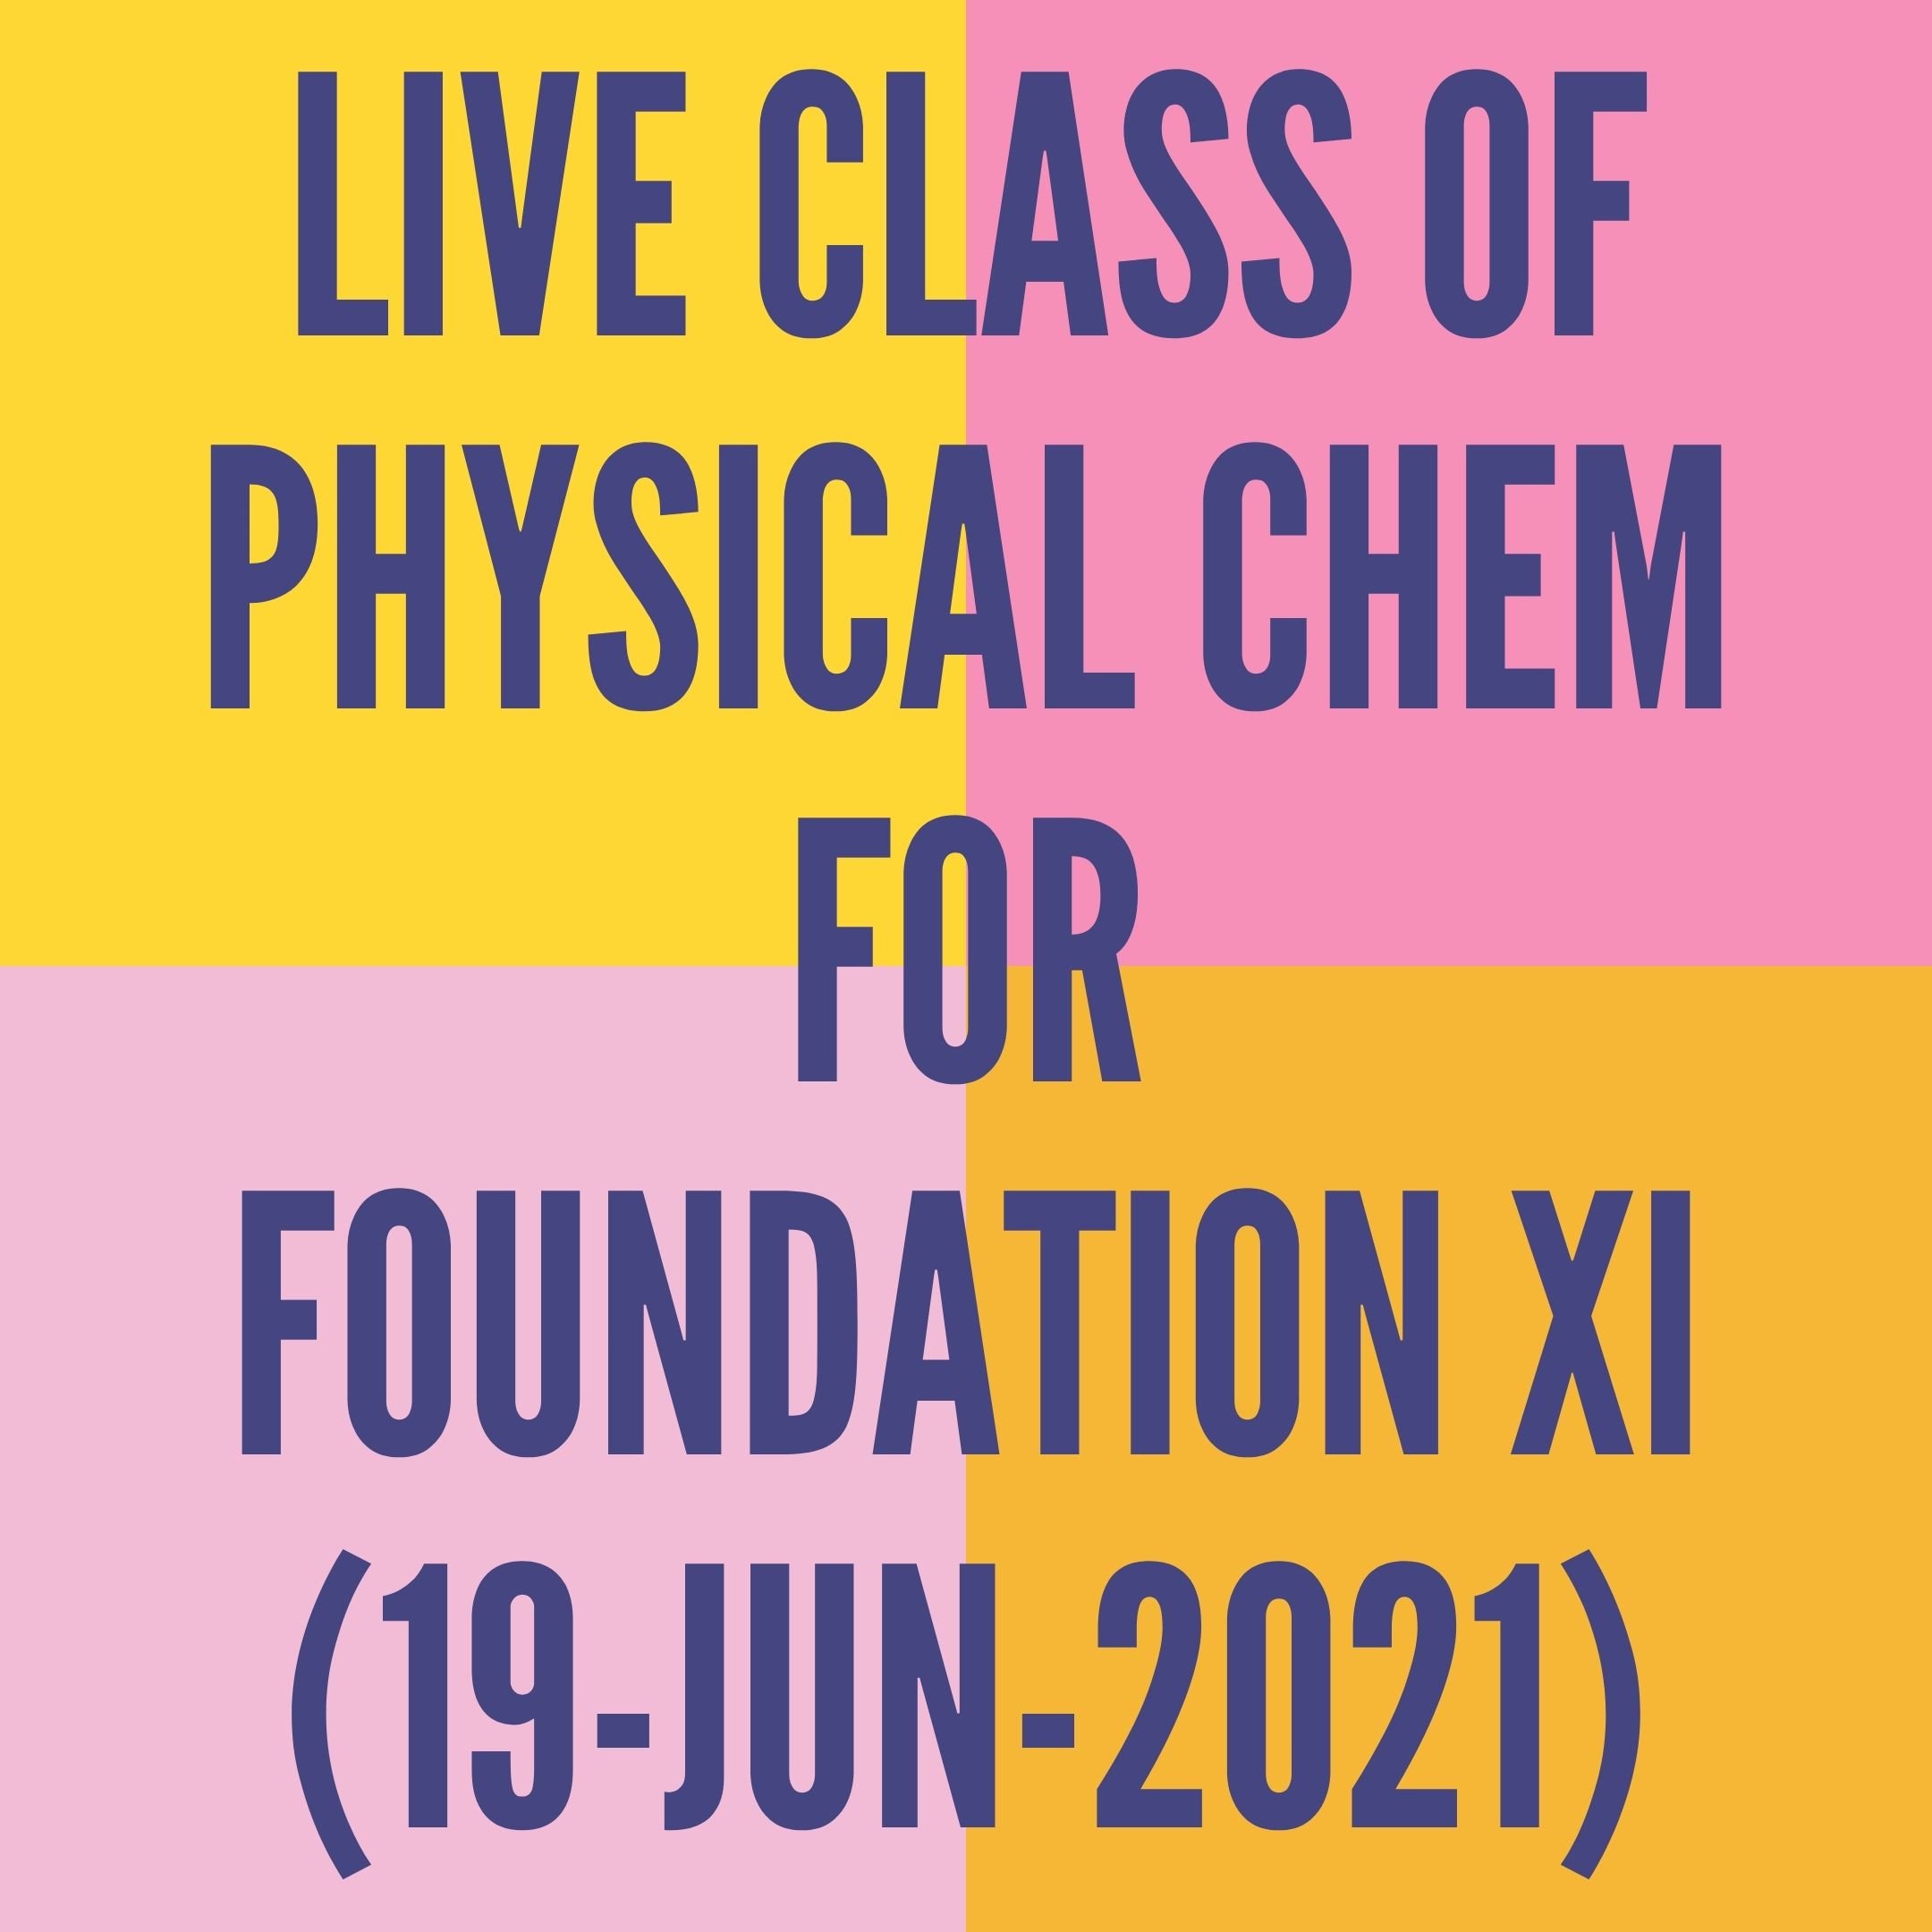 LIVE CLASS OF PHYSICAL CHEMISTRY FOR FOUNDATION XI (19-JUN-2021) SOME BASIC CONCEPT- MOLE